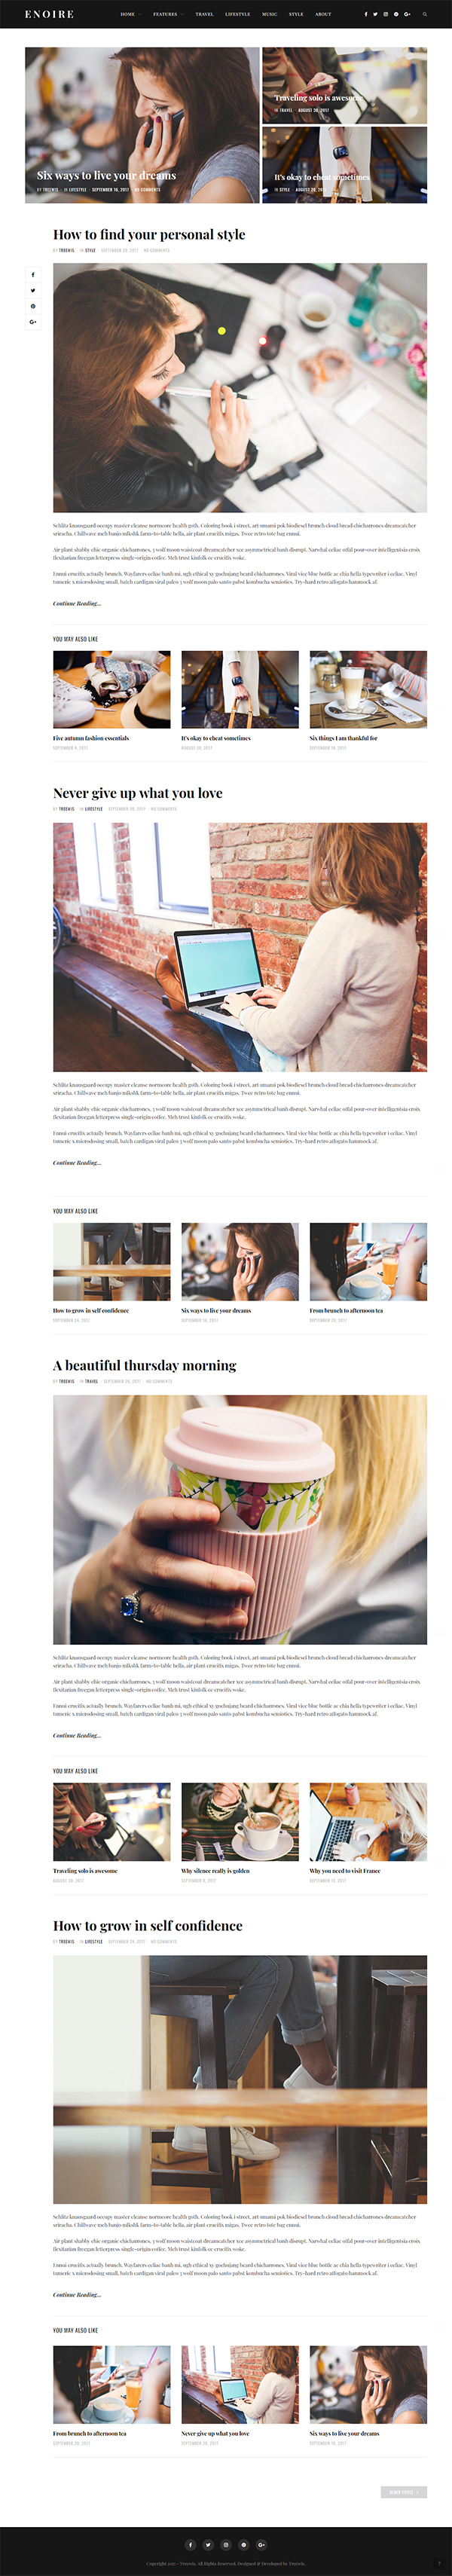 Enoire - WordPress Blog Theme